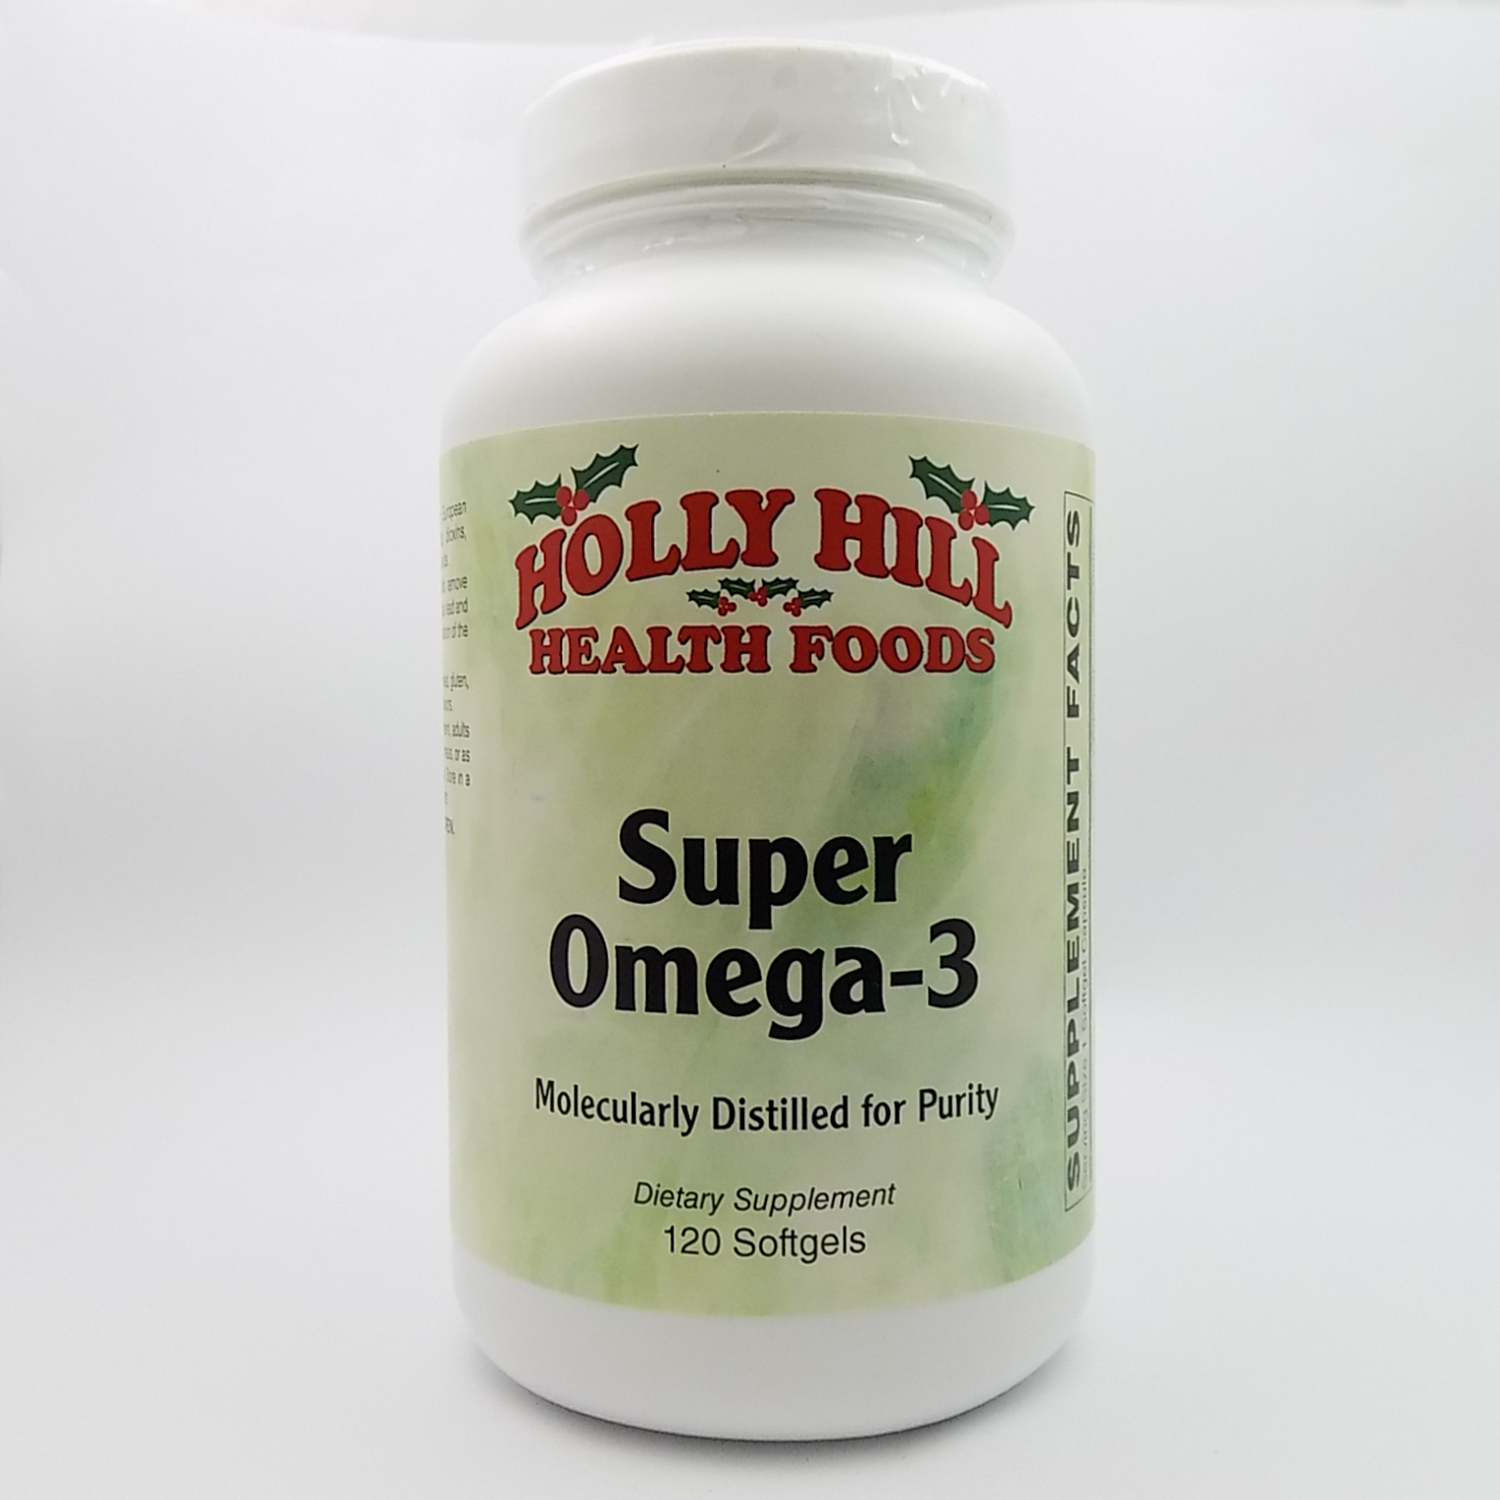 Holly Hill Health Foods, Super Omega 3 (Molecularly Distilled for Purity), 120 Softgels